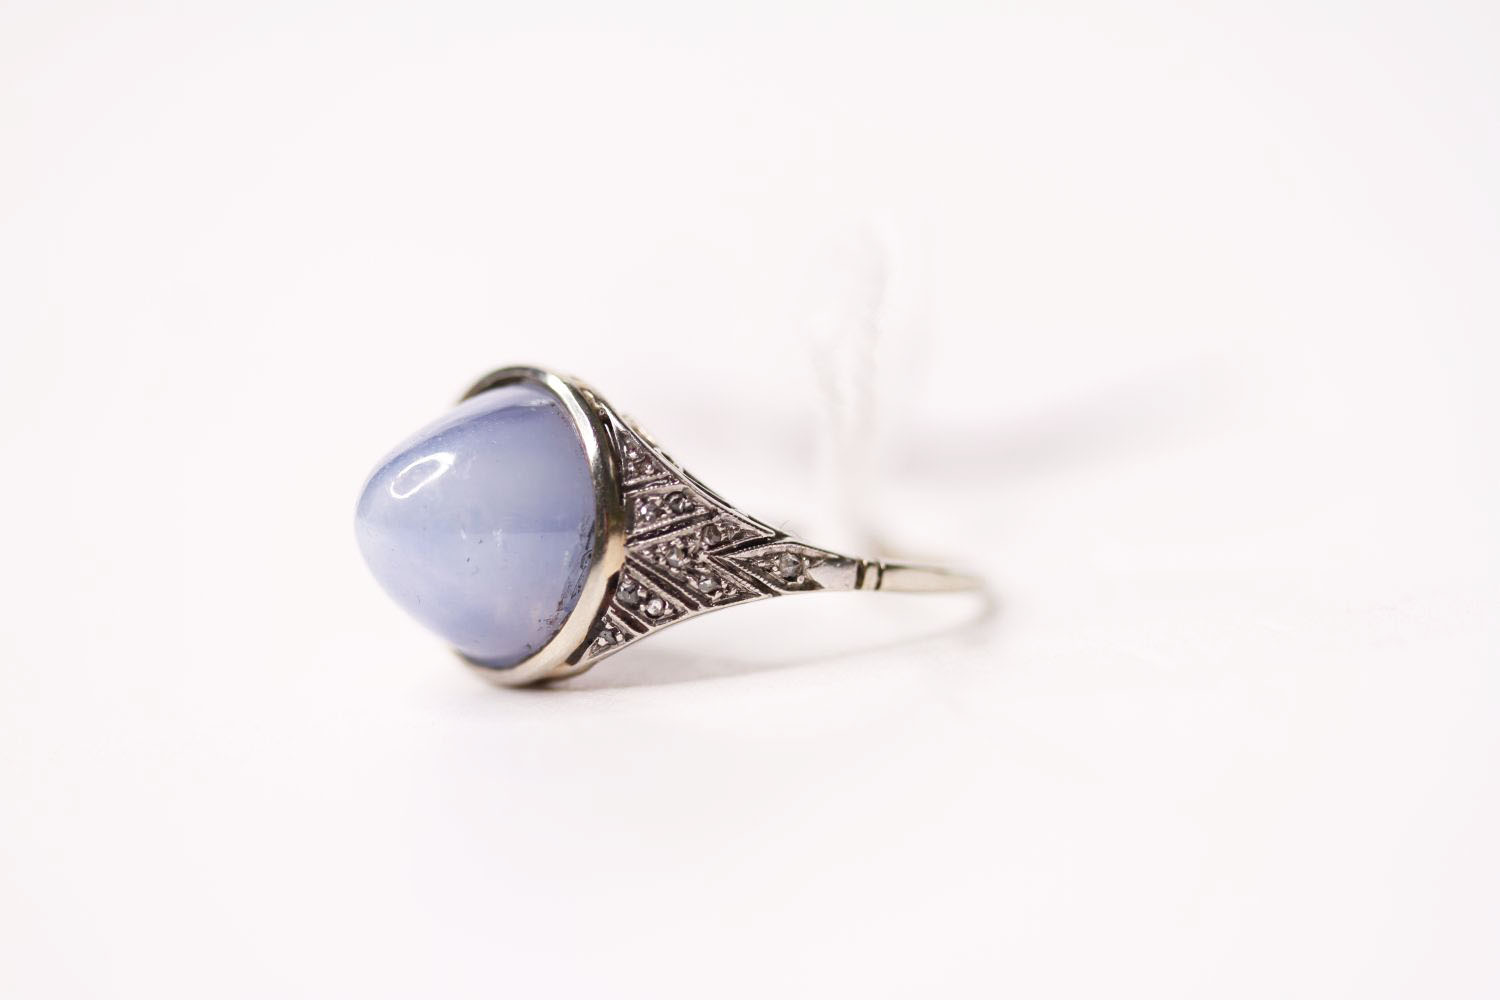 Cabochon Star Sapphire Ring, set with a cabochon cut star sapphire, art deco style, size O. - Image 3 of 4